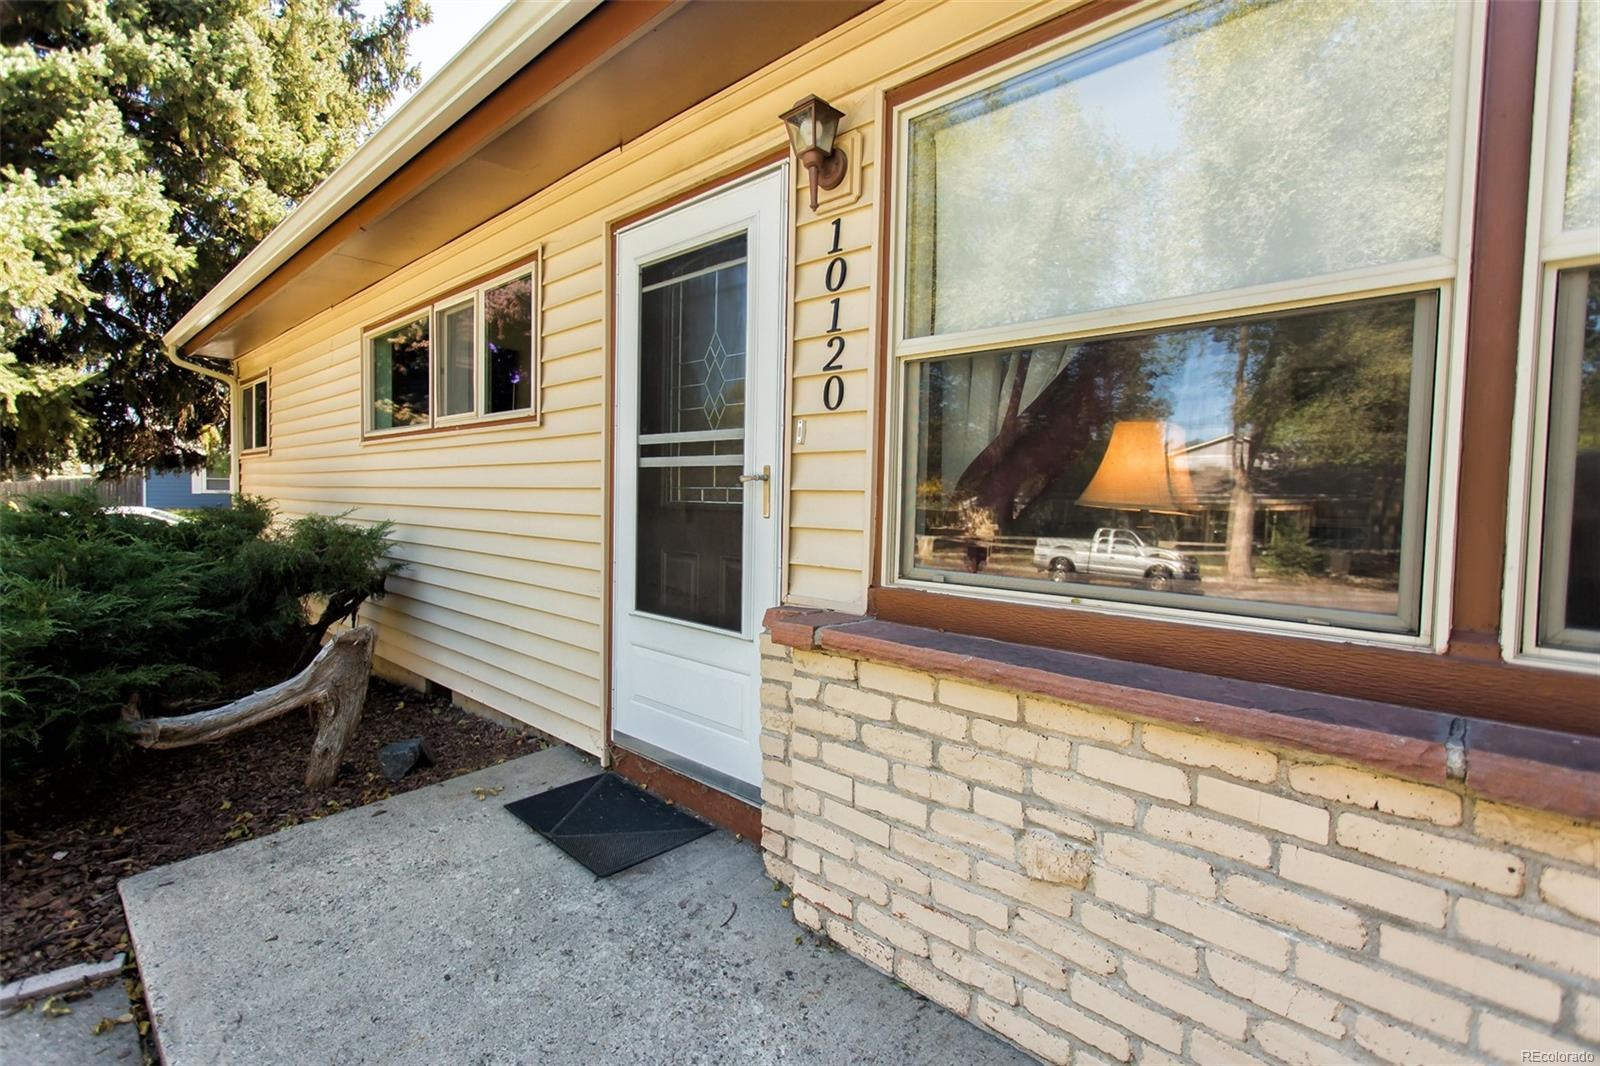 MLS# 1591889 - 3 - 10120 W 8th Place, Lakewood, CO 80215